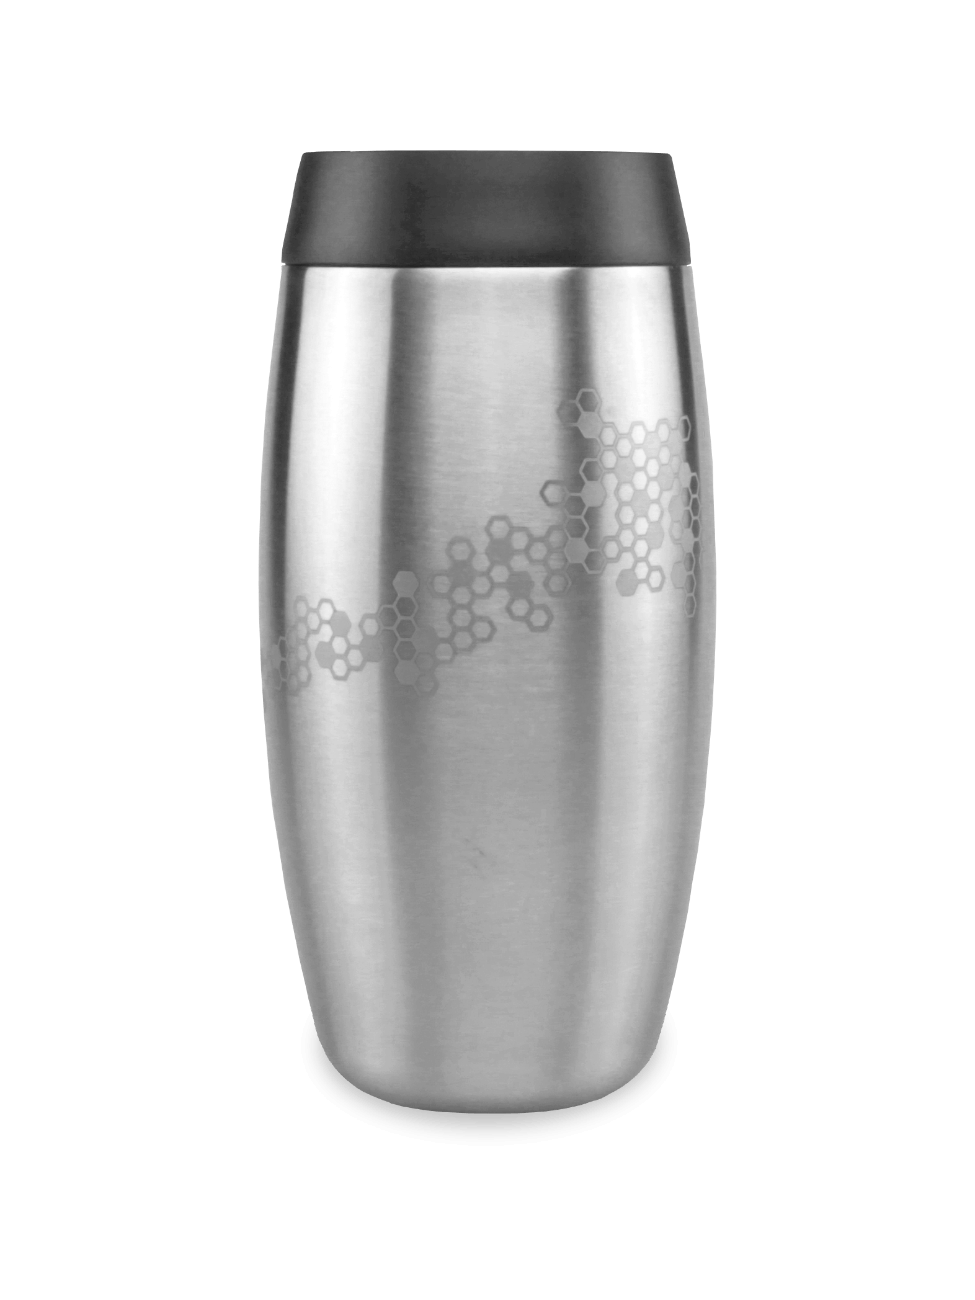 Leakproof reusable steel coffee cup with laser etched bee and honeycomb